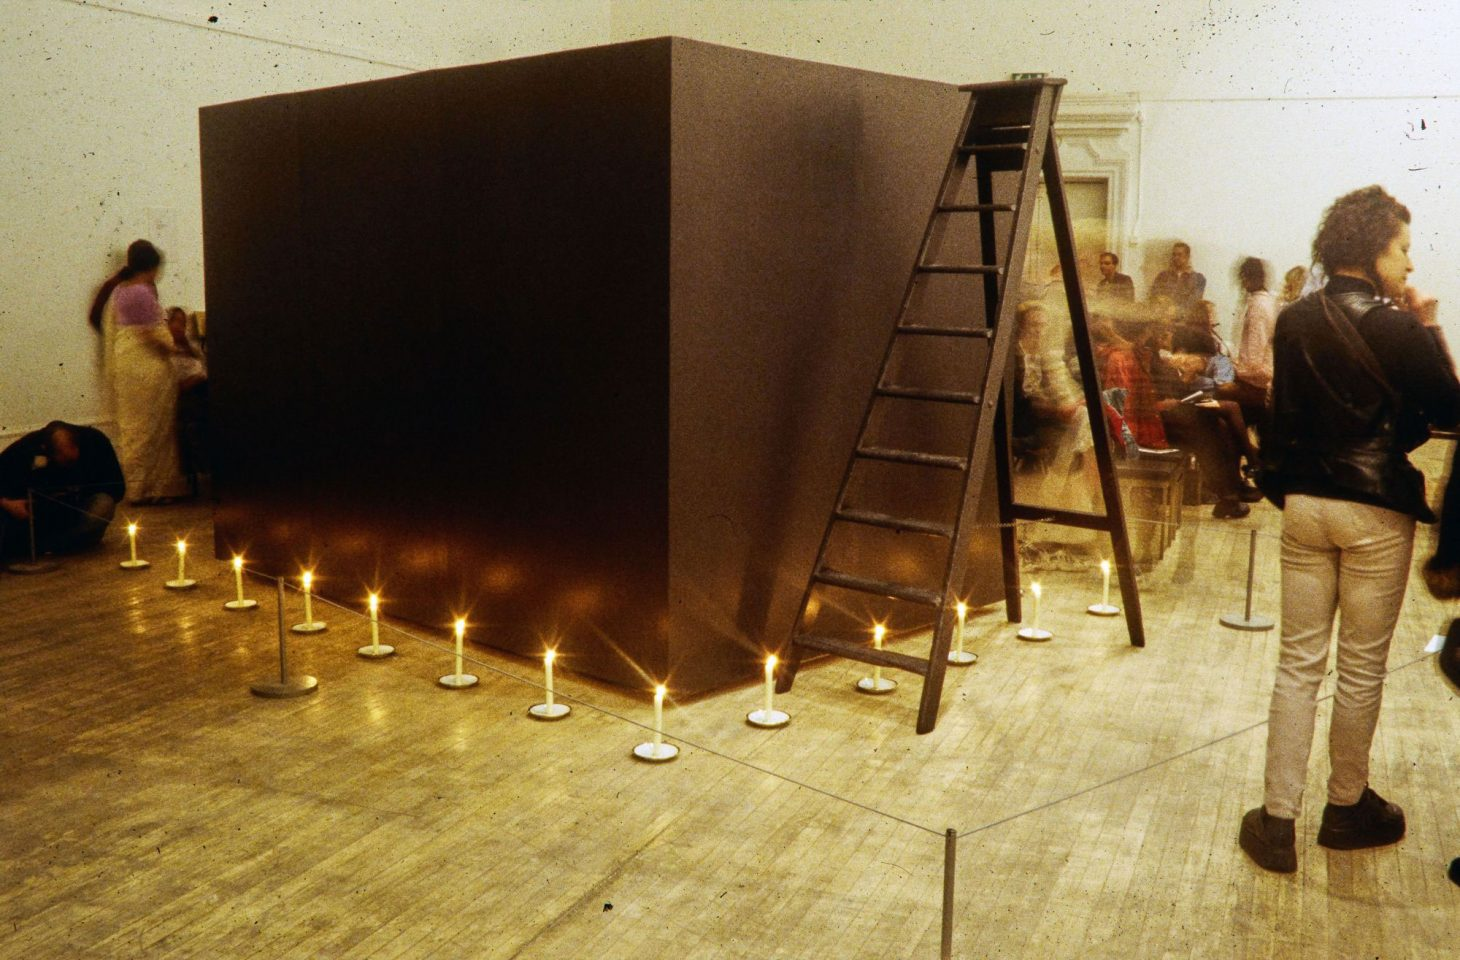 Installation view from 1998 group exhibition, Parallel Universe.